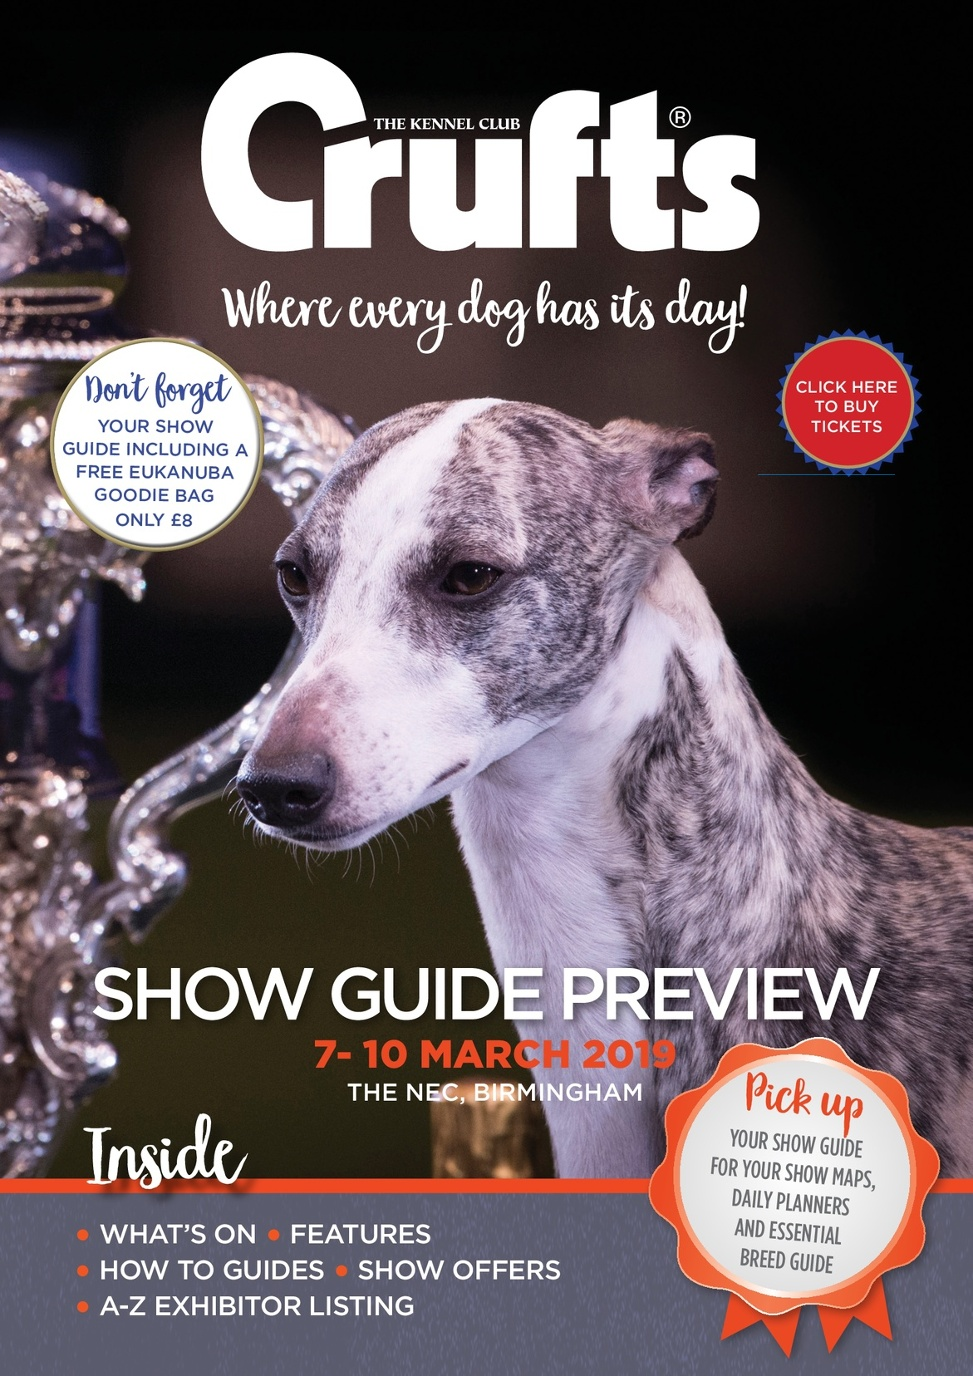 Trade Stands Crufts 2015 : Crufts preview